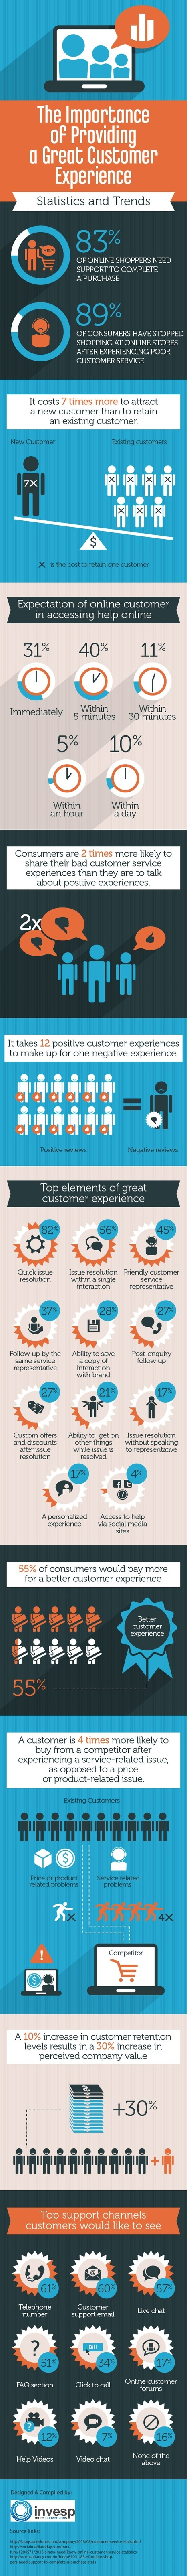 How Important Is Customer Service In Customer Experience? #infographic | MarketingHits | Scoop.it